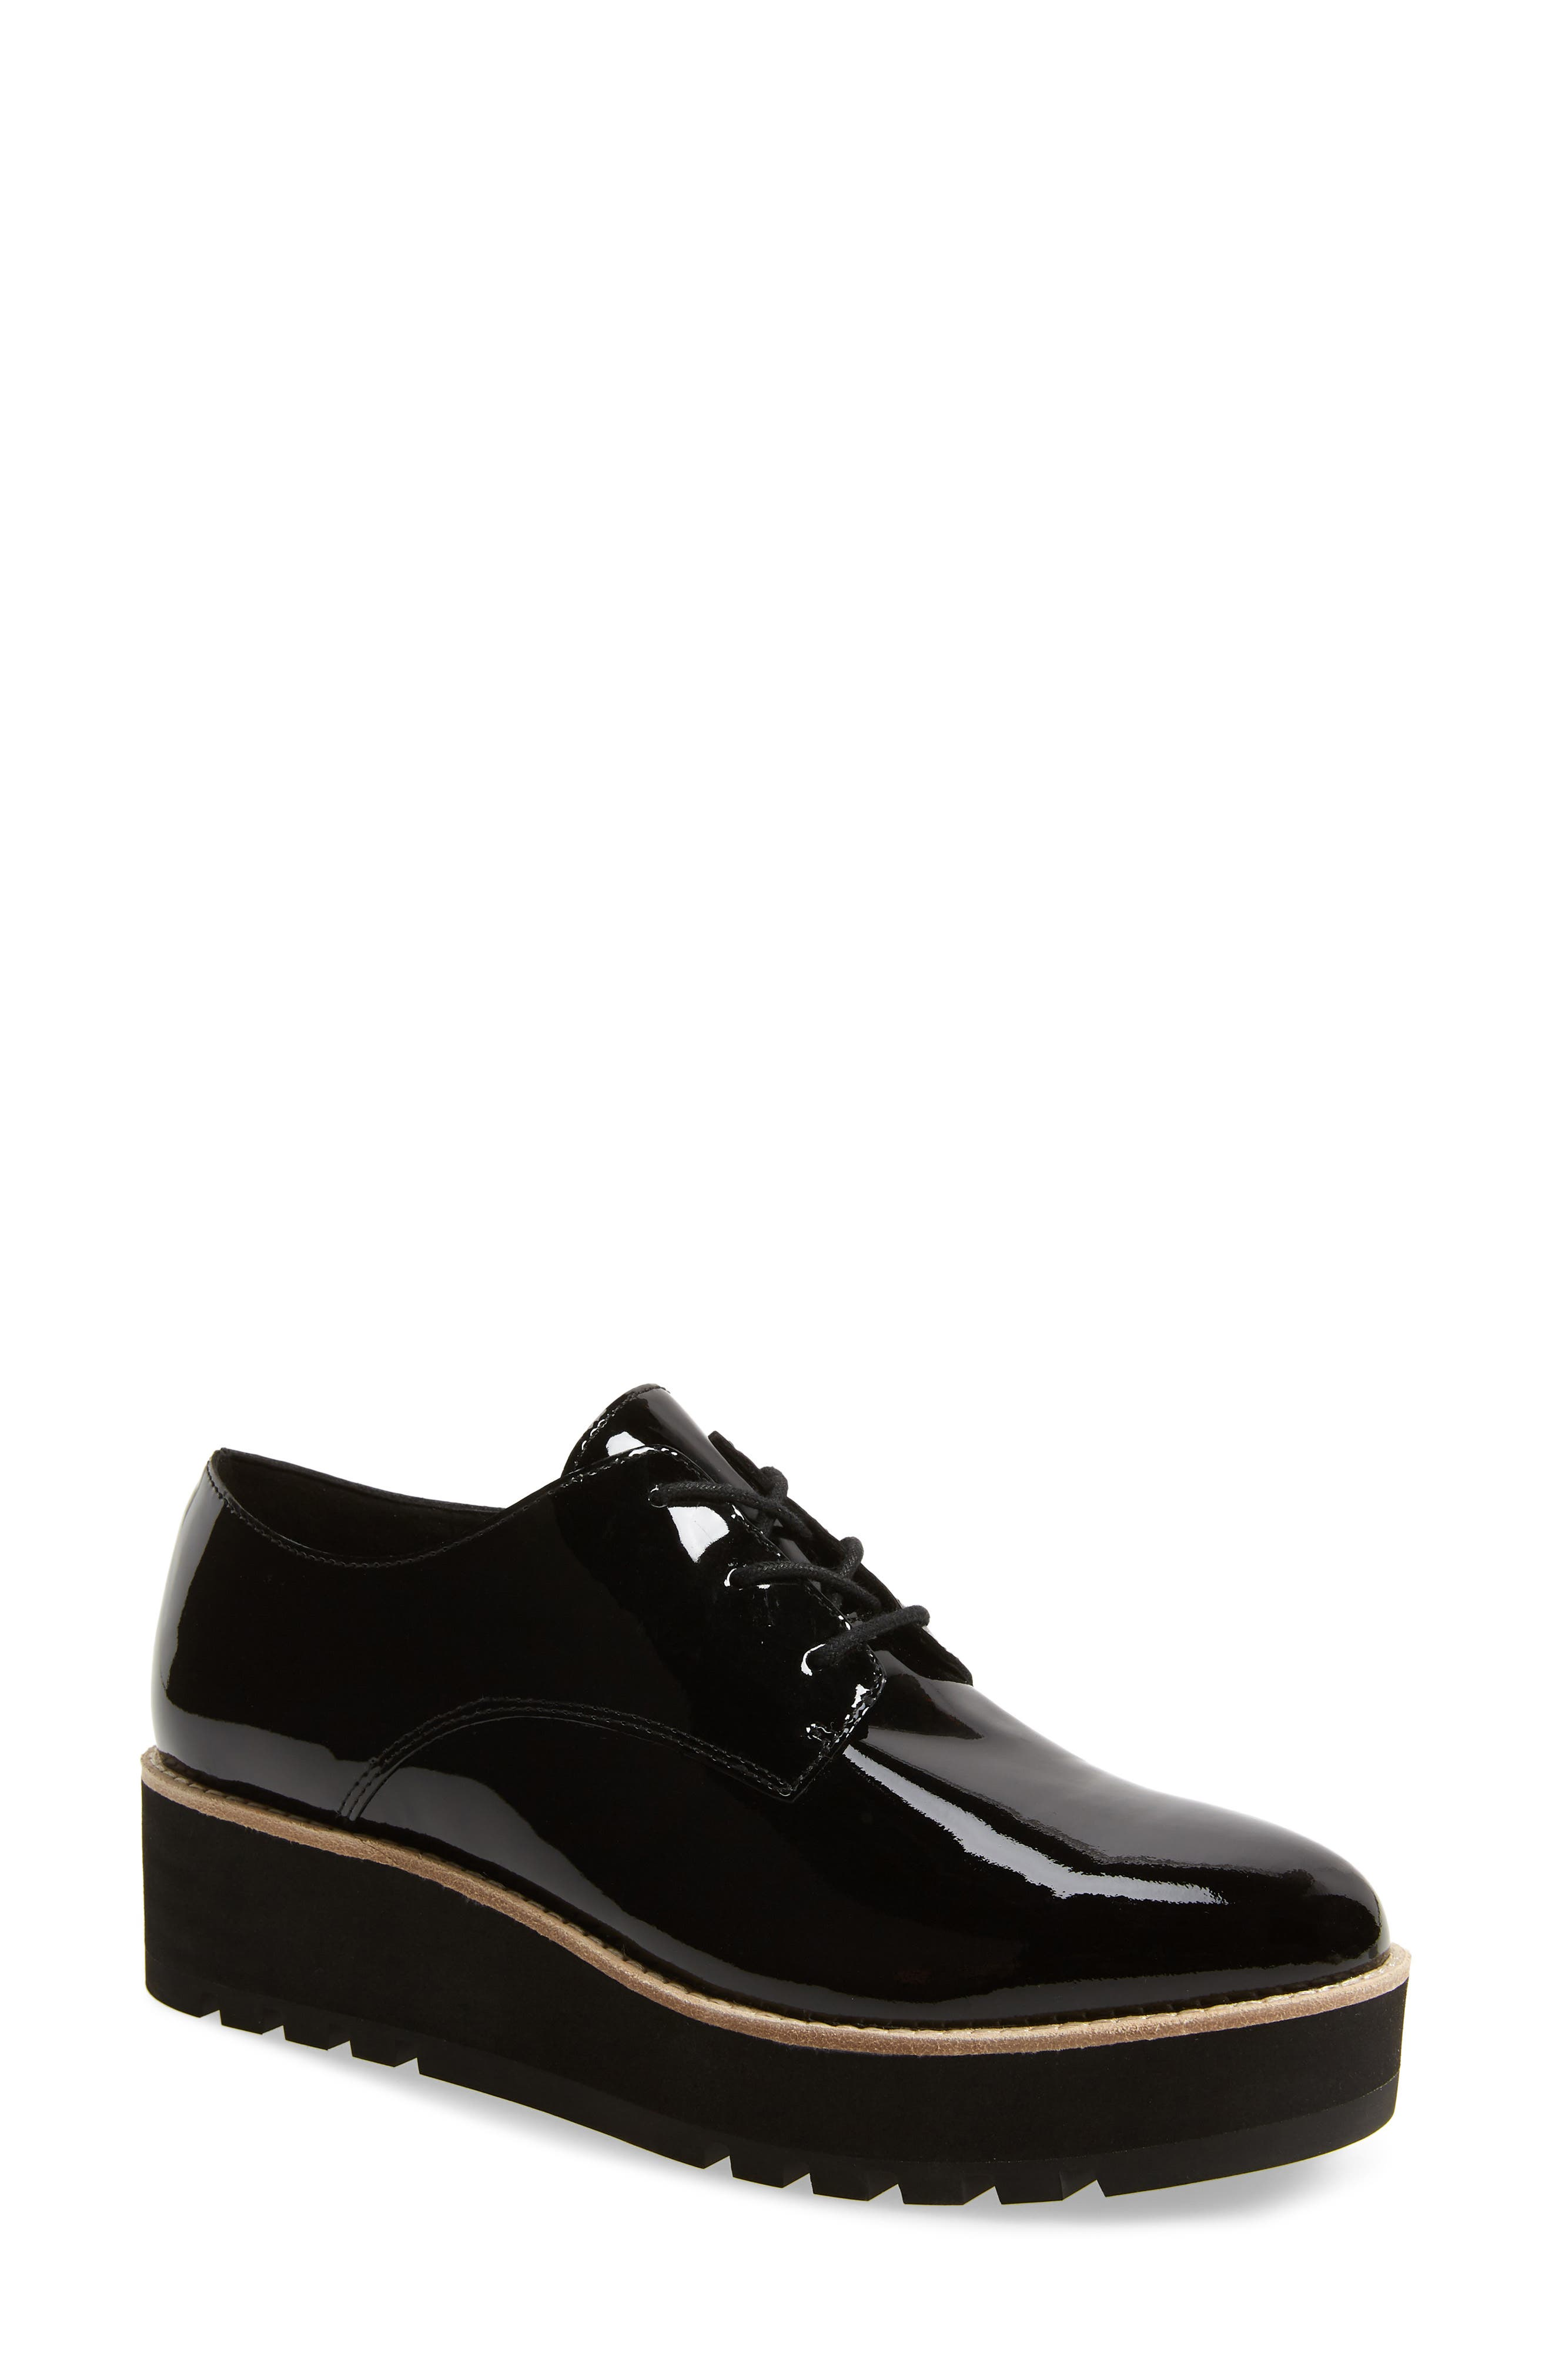 Eddy Derby,                             Main thumbnail 1, color,                             BLACK PATENT LEATHER